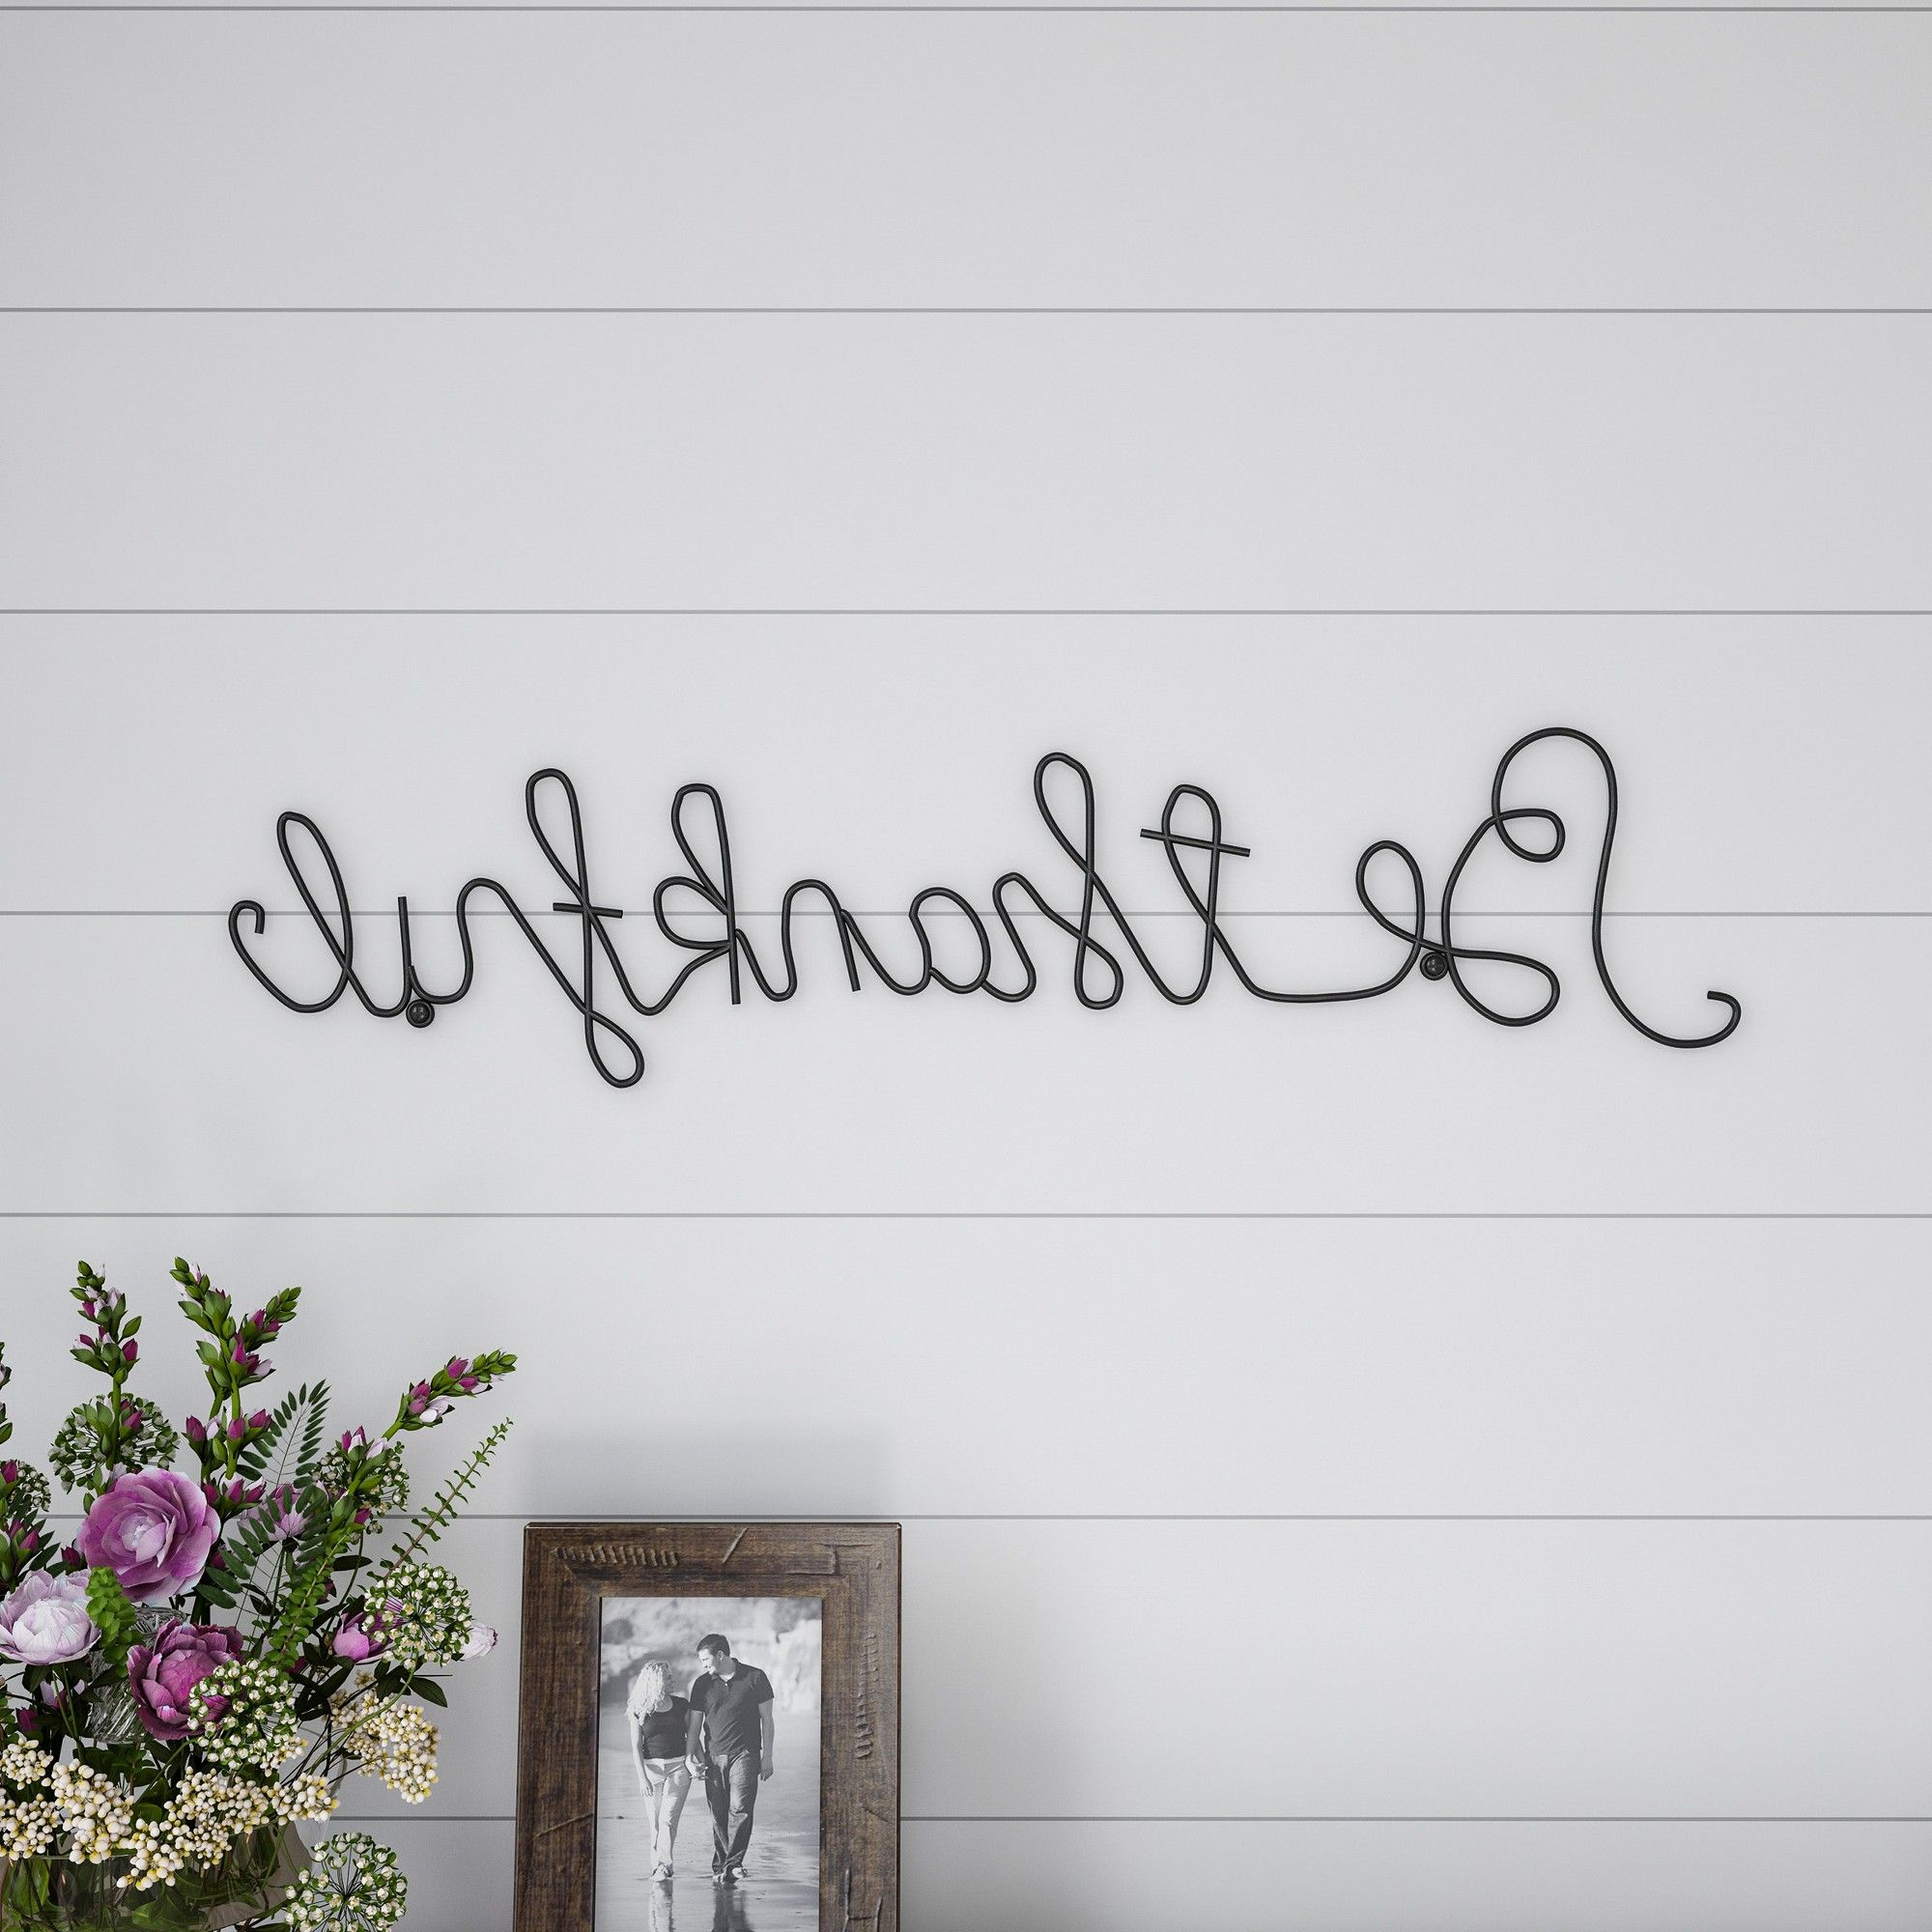 Widely Used Be Thankful' Cursive Metal Cutout Sign Black – Lavish Home Pertaining To Choose Happiness 3d Cursive Metal Wall Décor (View 8 of 20)